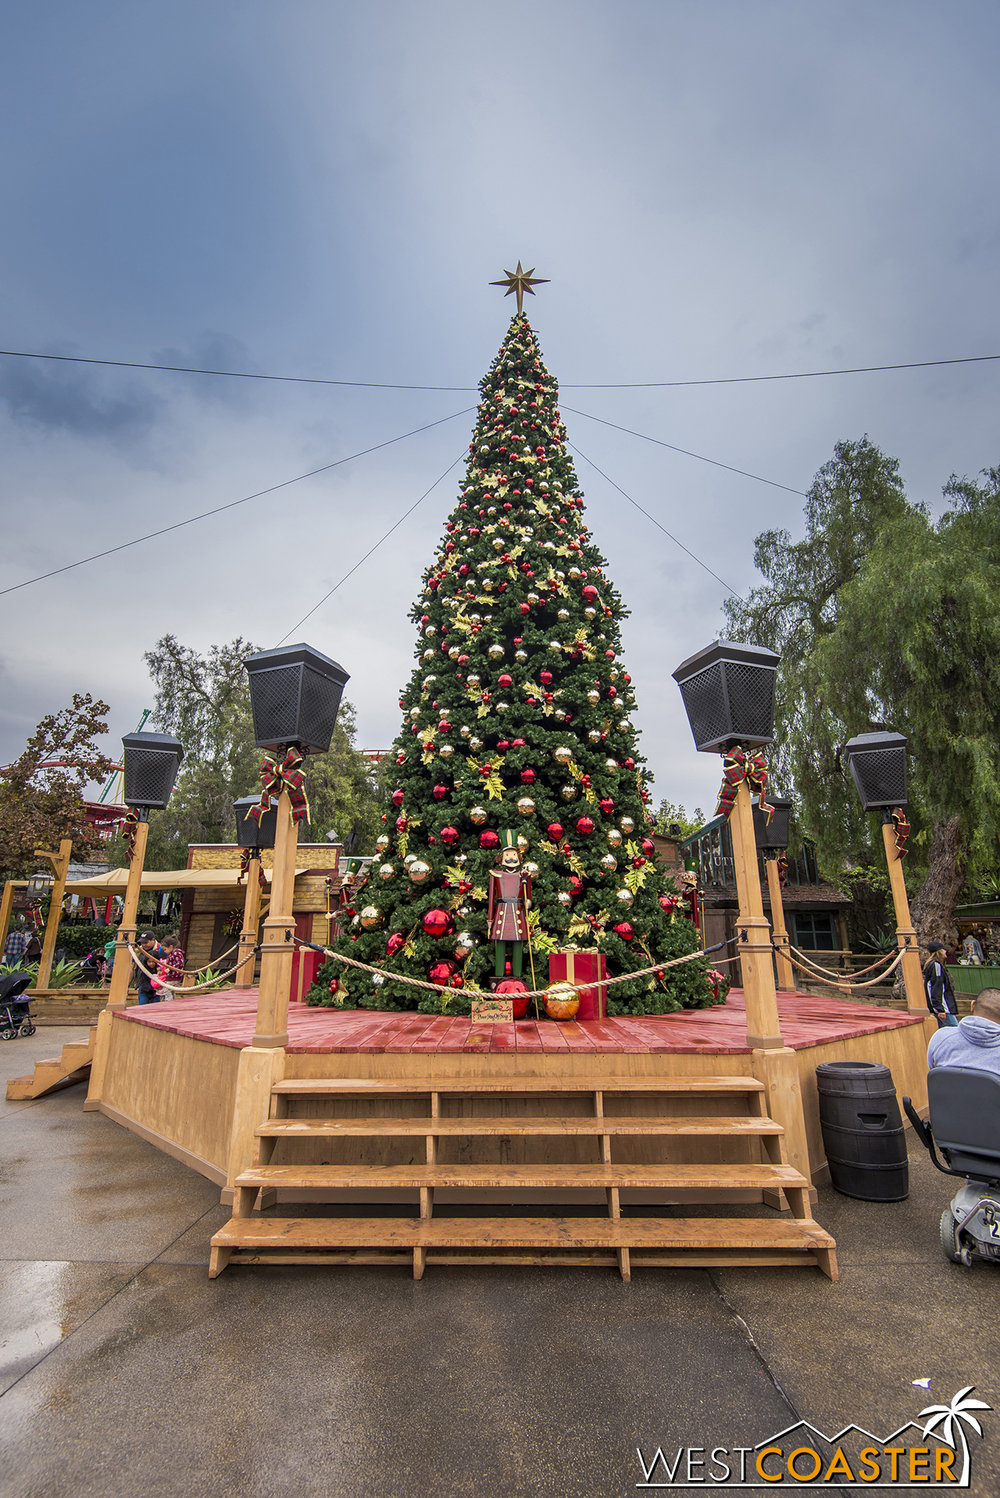 Calico Park's Christmas tree rises tall above Ghost Town.